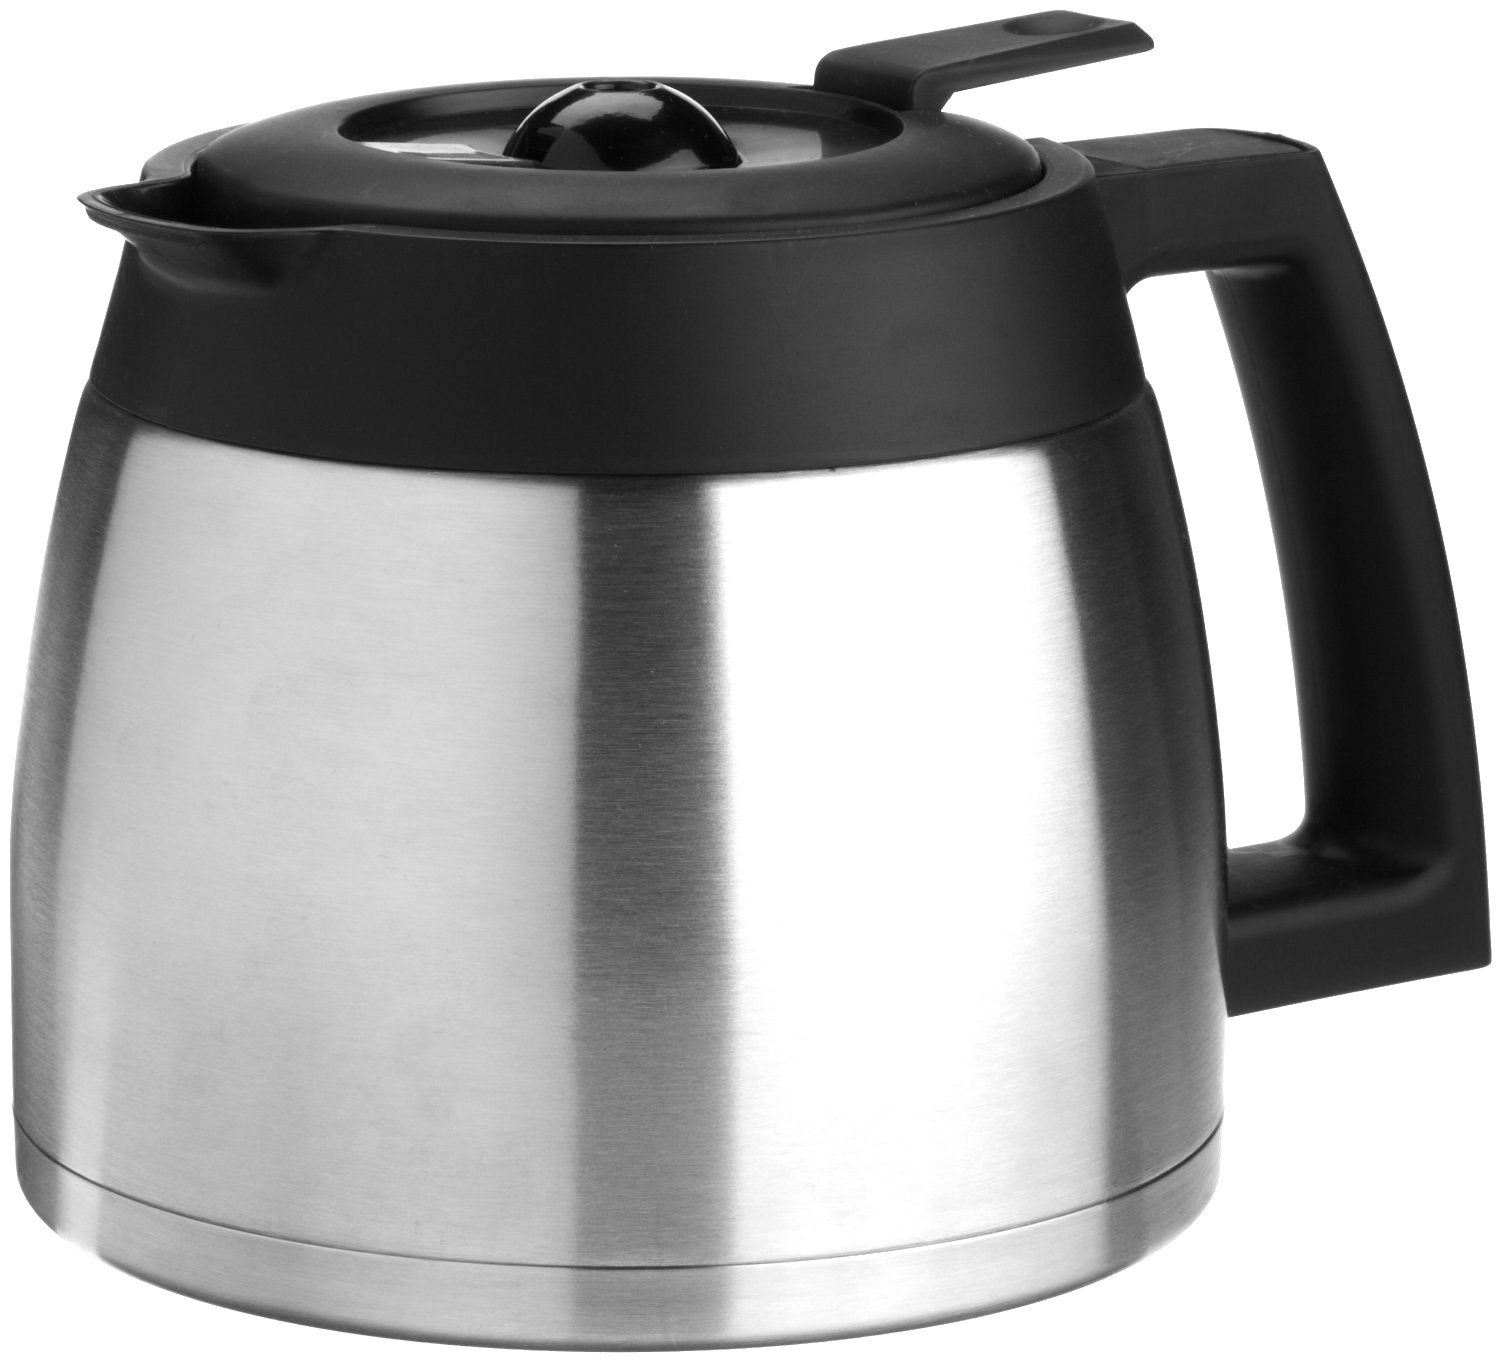 Capresso 4465.05 10-Cup Stainless Steel Thermal Carafe with Lid for CoffeeTeam TS Coffee Maker